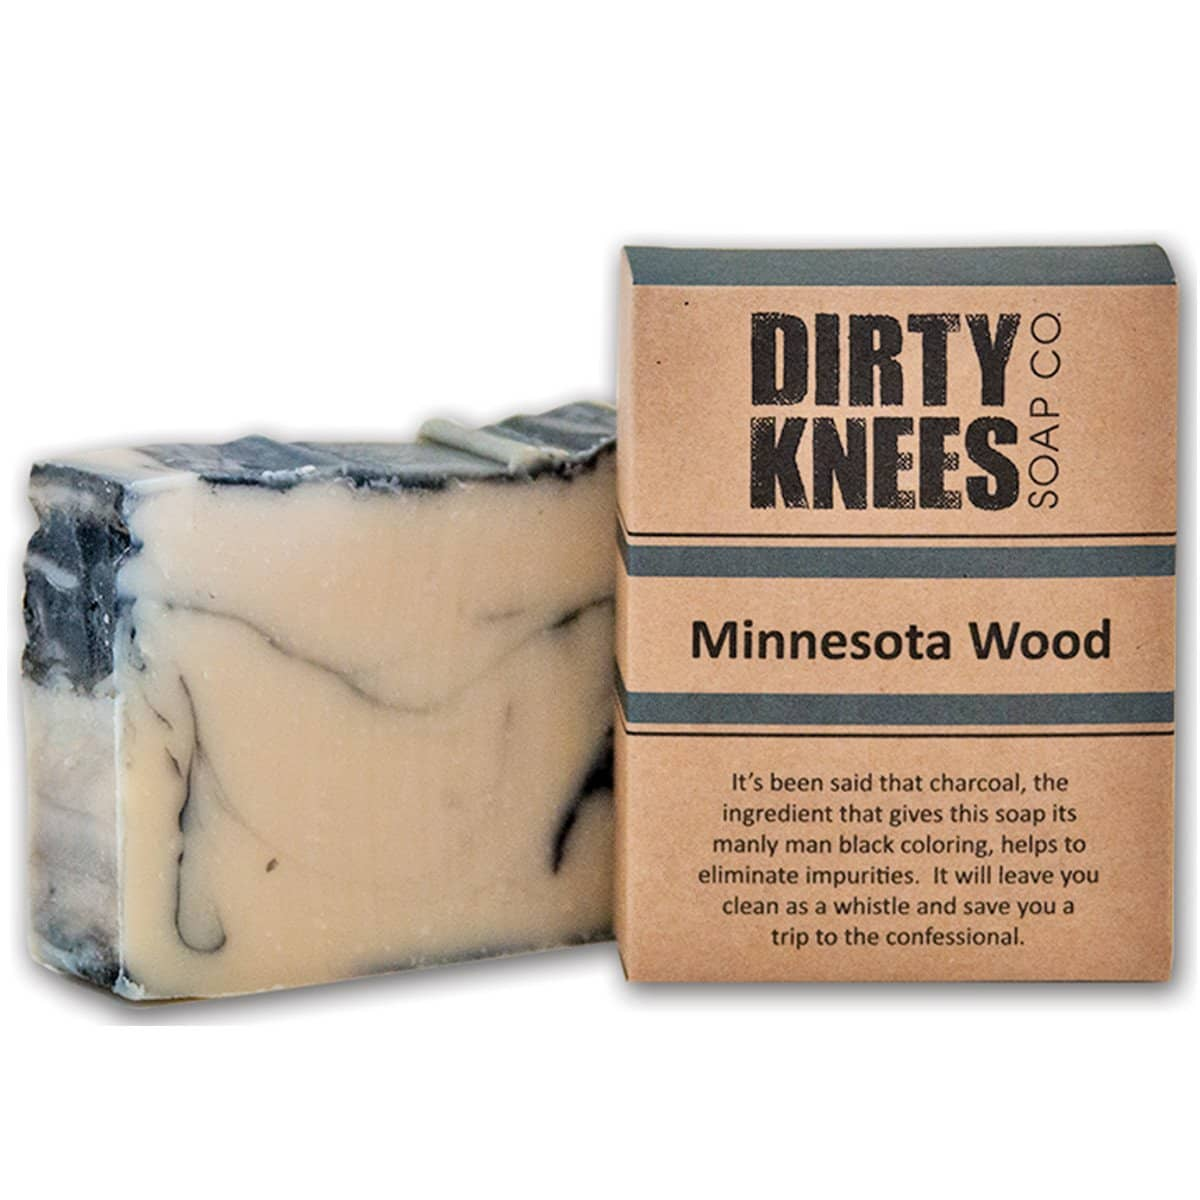 minnesota wood soap